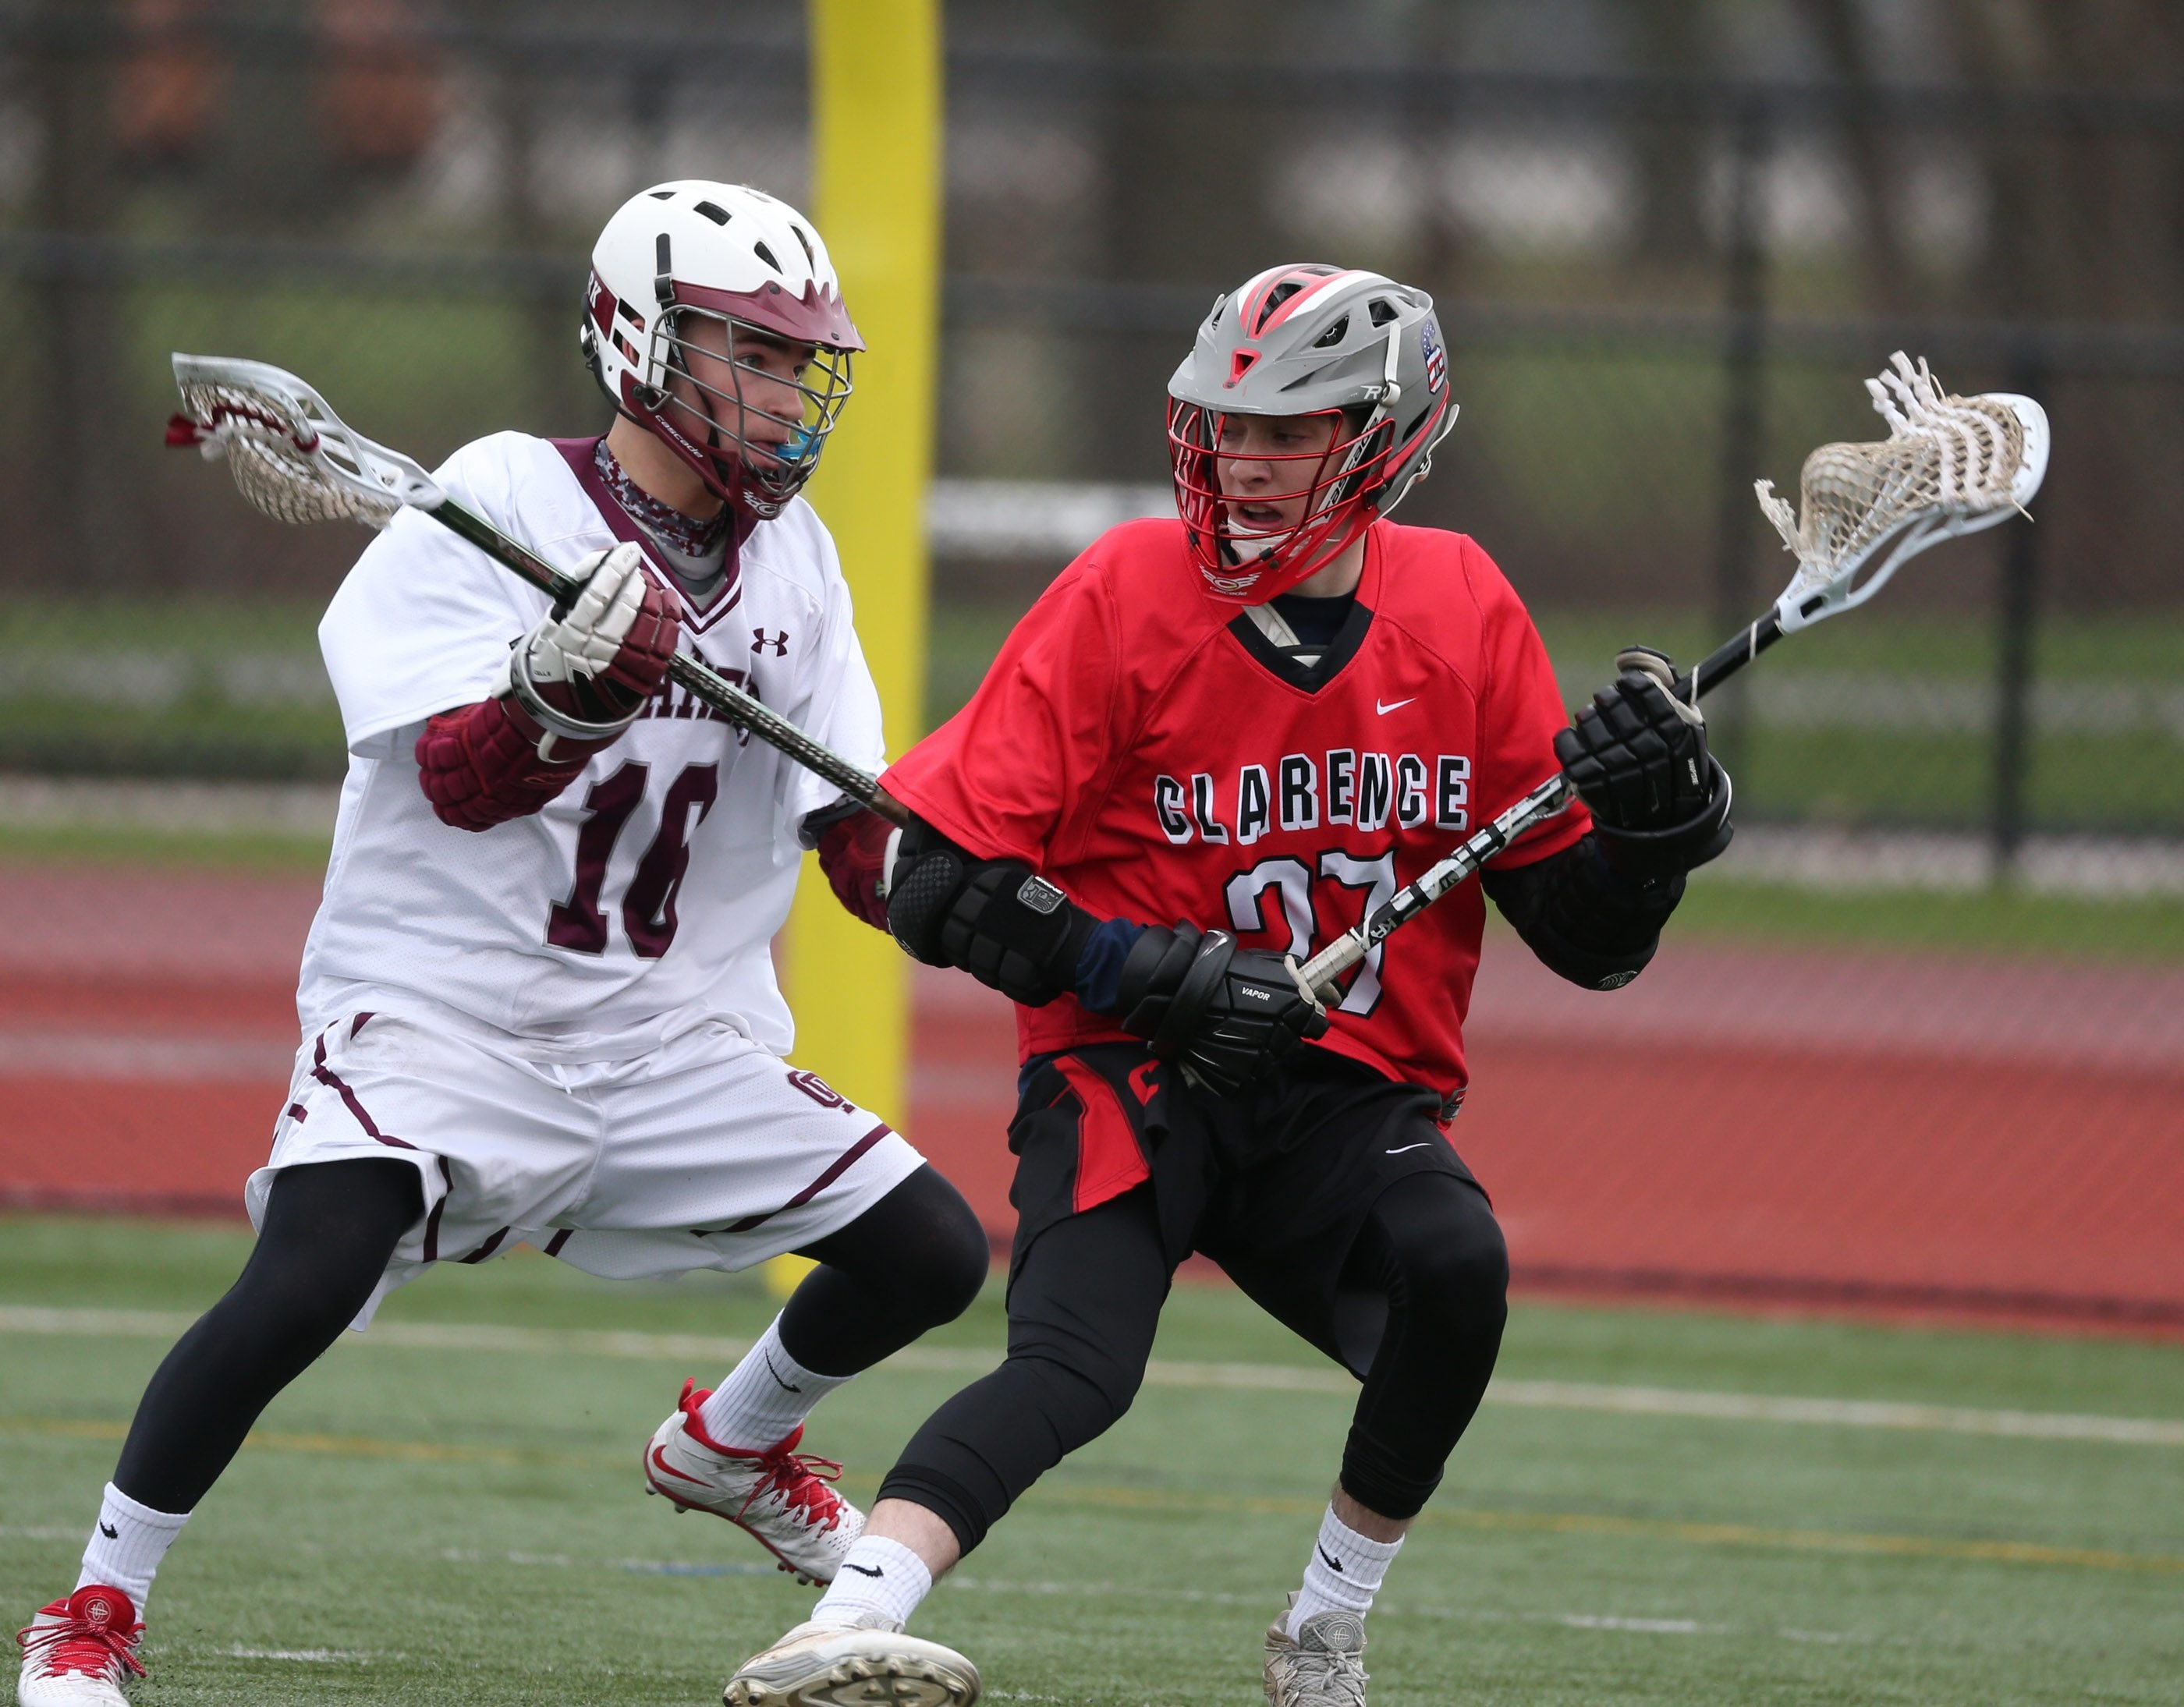 Orchard Park's Griffin Loughran battles Clarence's Riley Fitzhenry for the ball in the first half of their recent game. Both teams have undergone a shake-up, with their head coaches stepping down.